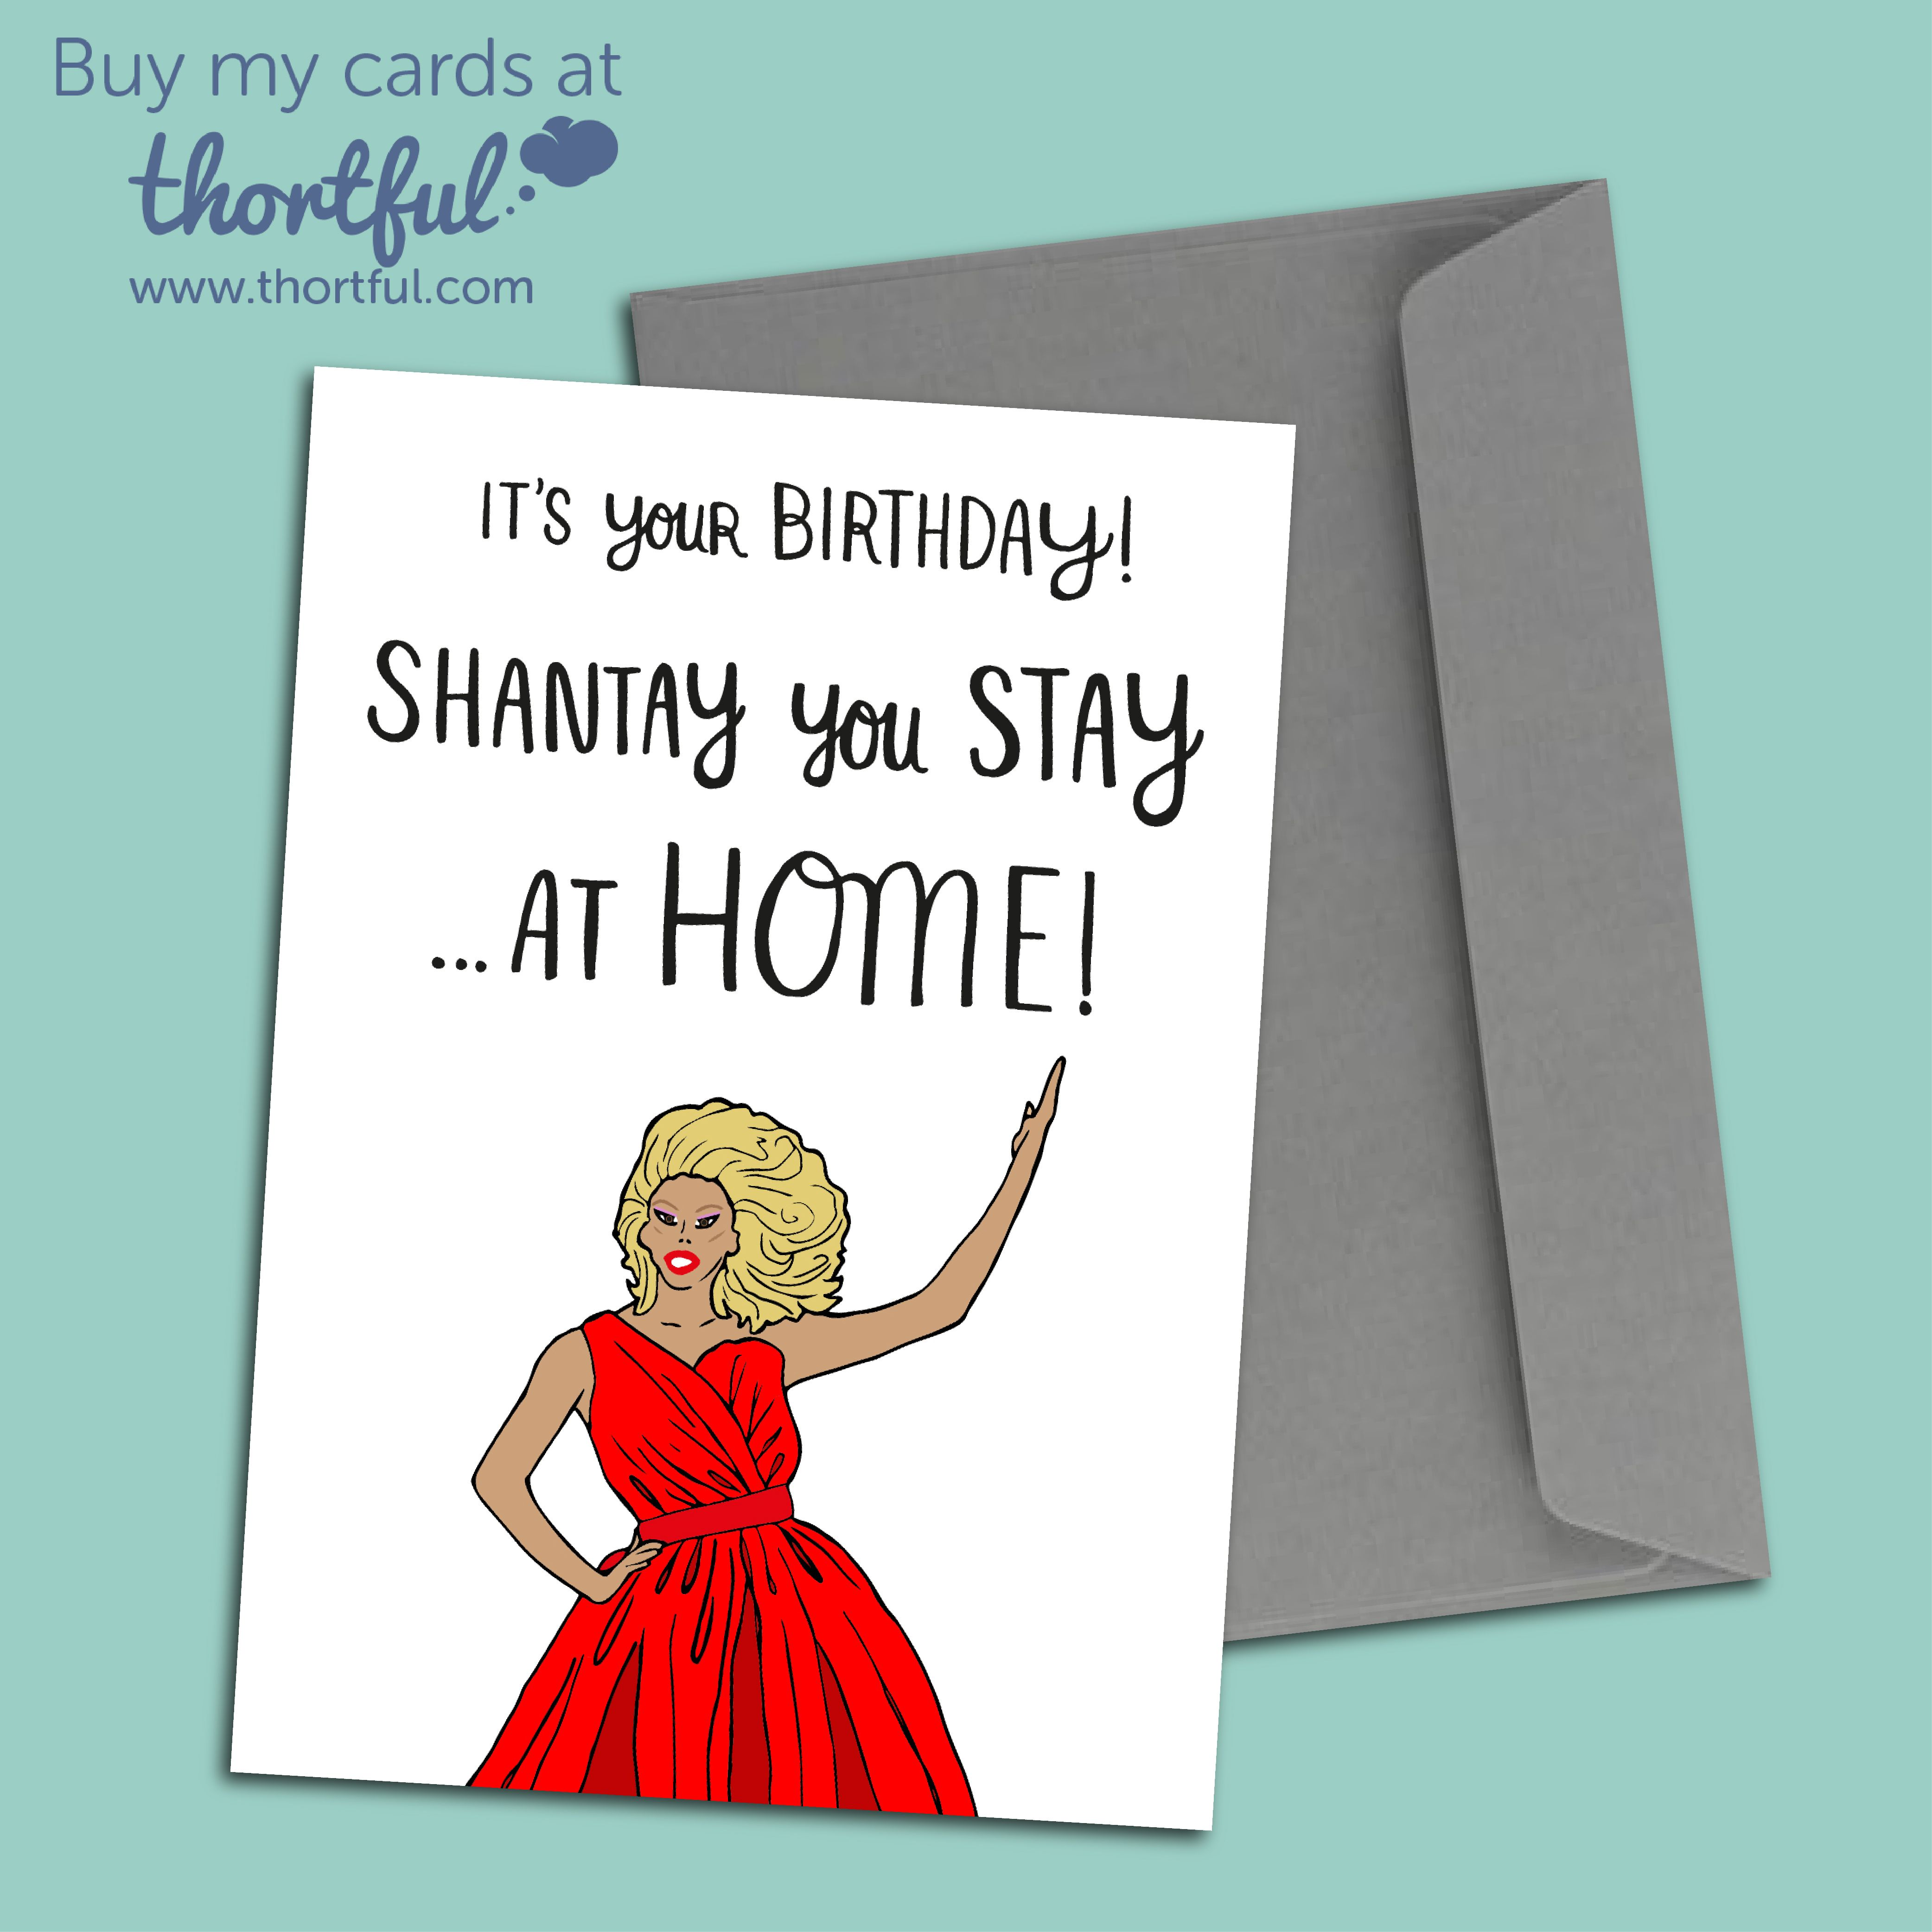 Thortful An Awesome Birthday Card From O What A Feeling Birthday Cards Cards Cool Cards